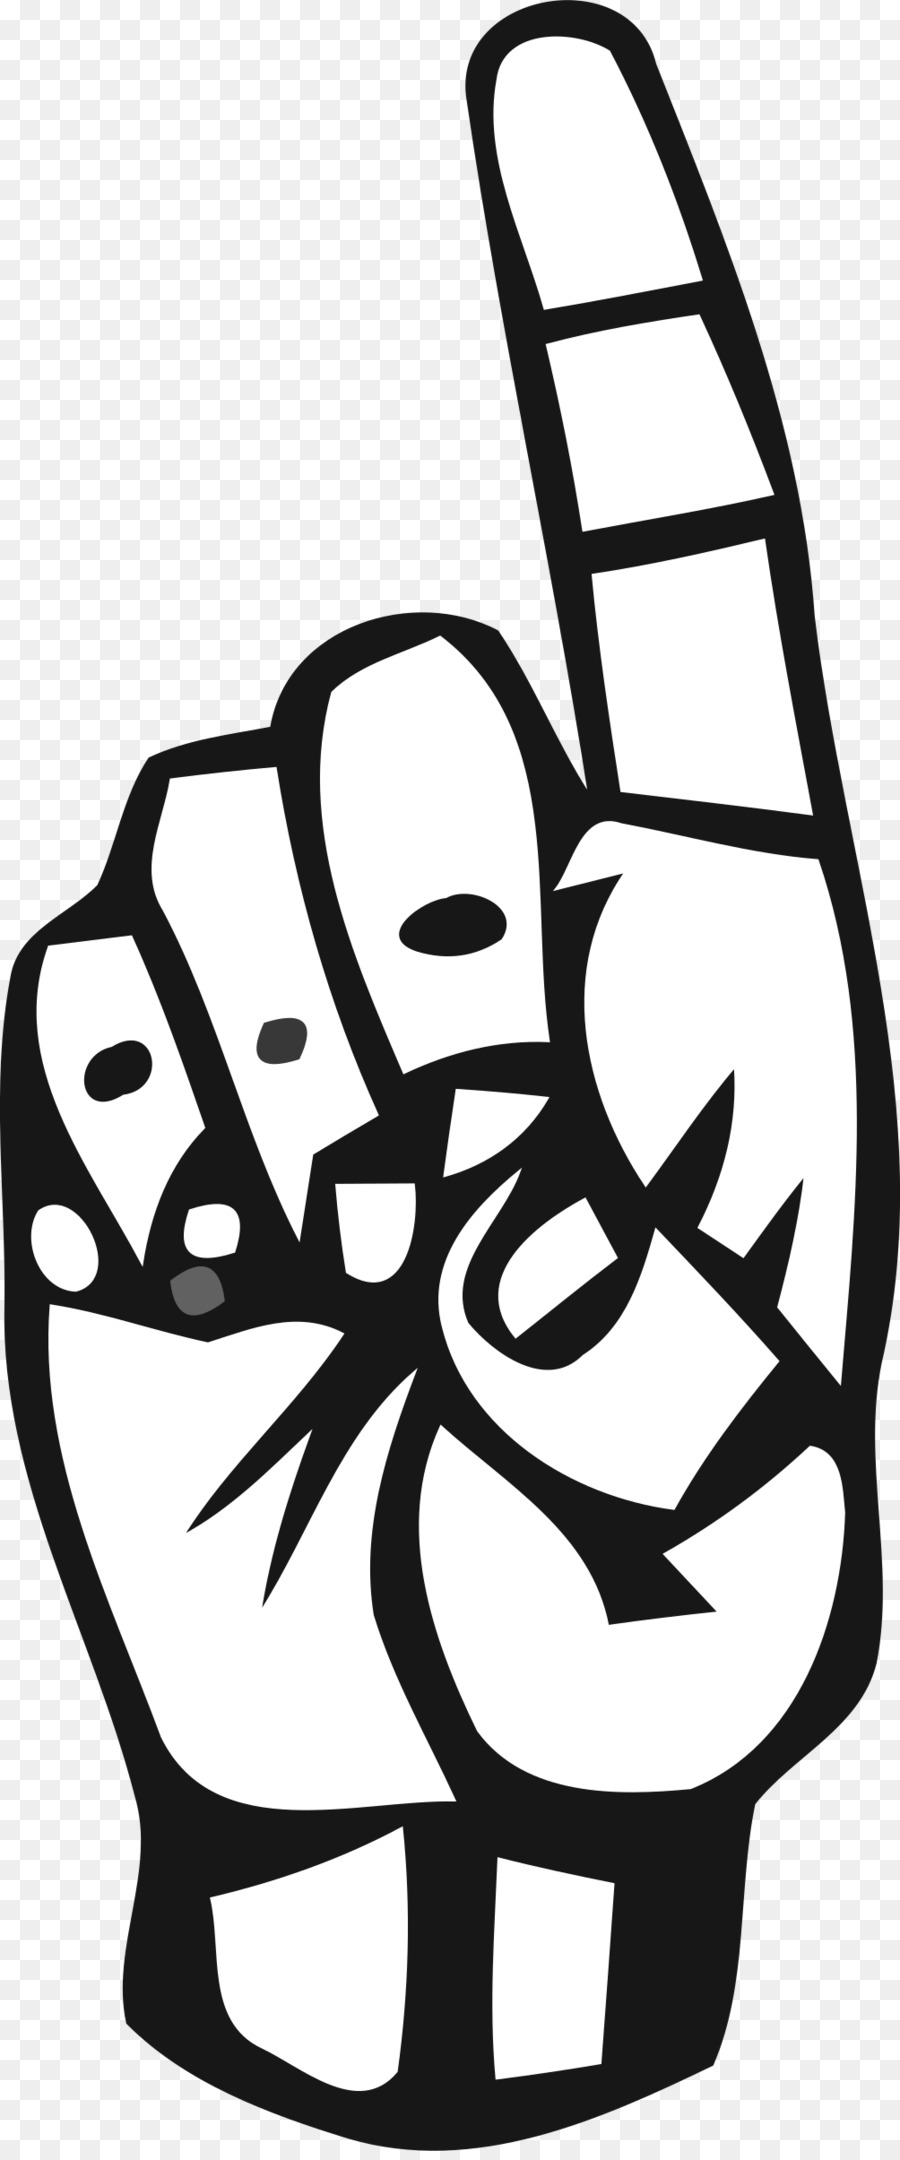 Sign language clipart black and white vector logo graphic transparent library American Sign Language Face png download - 1004*2400 - Free ... graphic transparent library